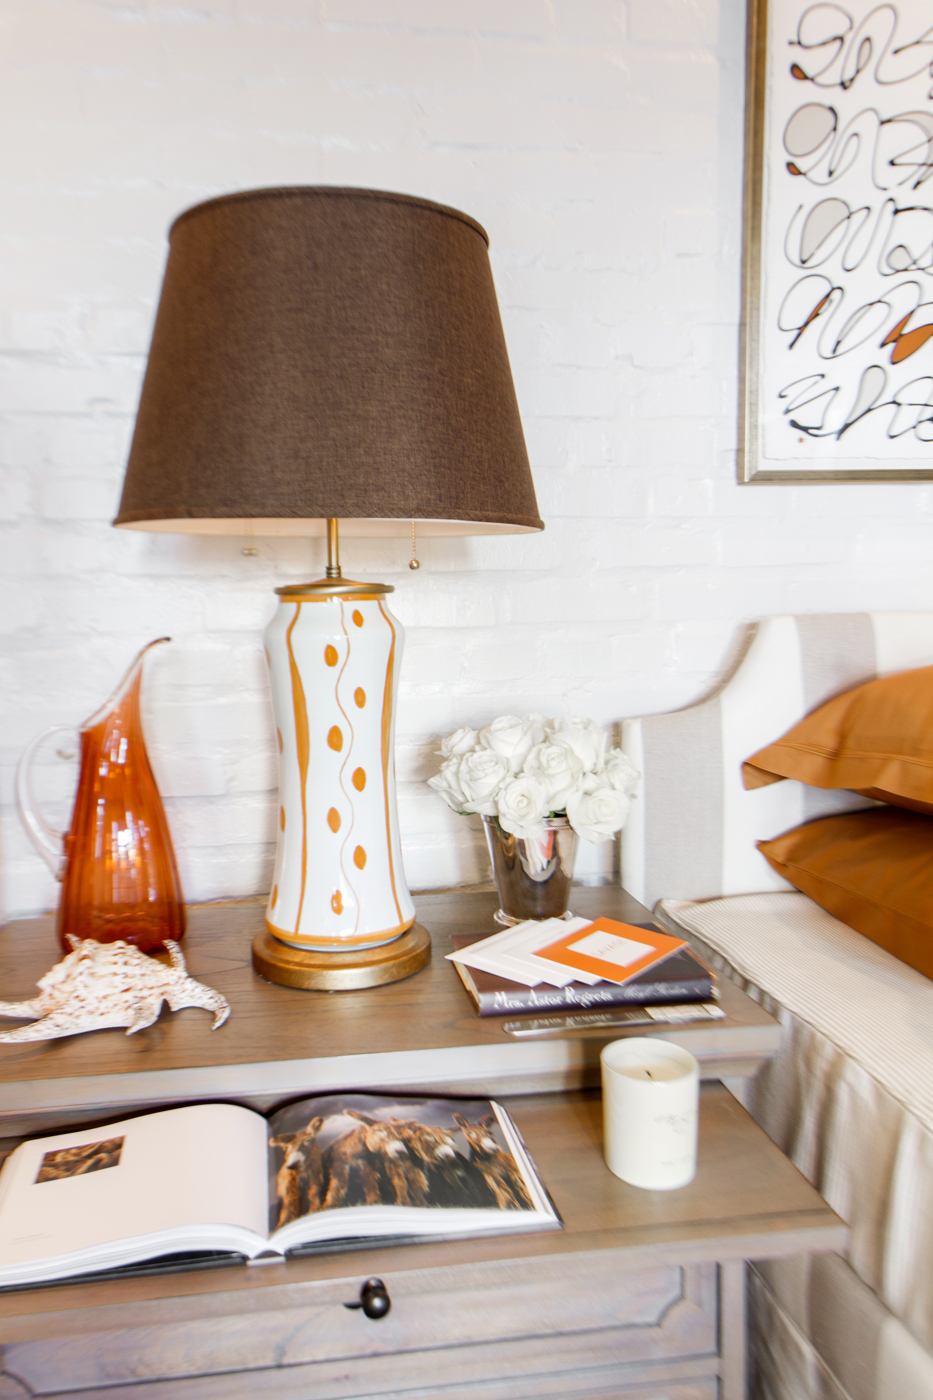 Bedside table accessories with orange and white modern table lamp   Savage Interior Design